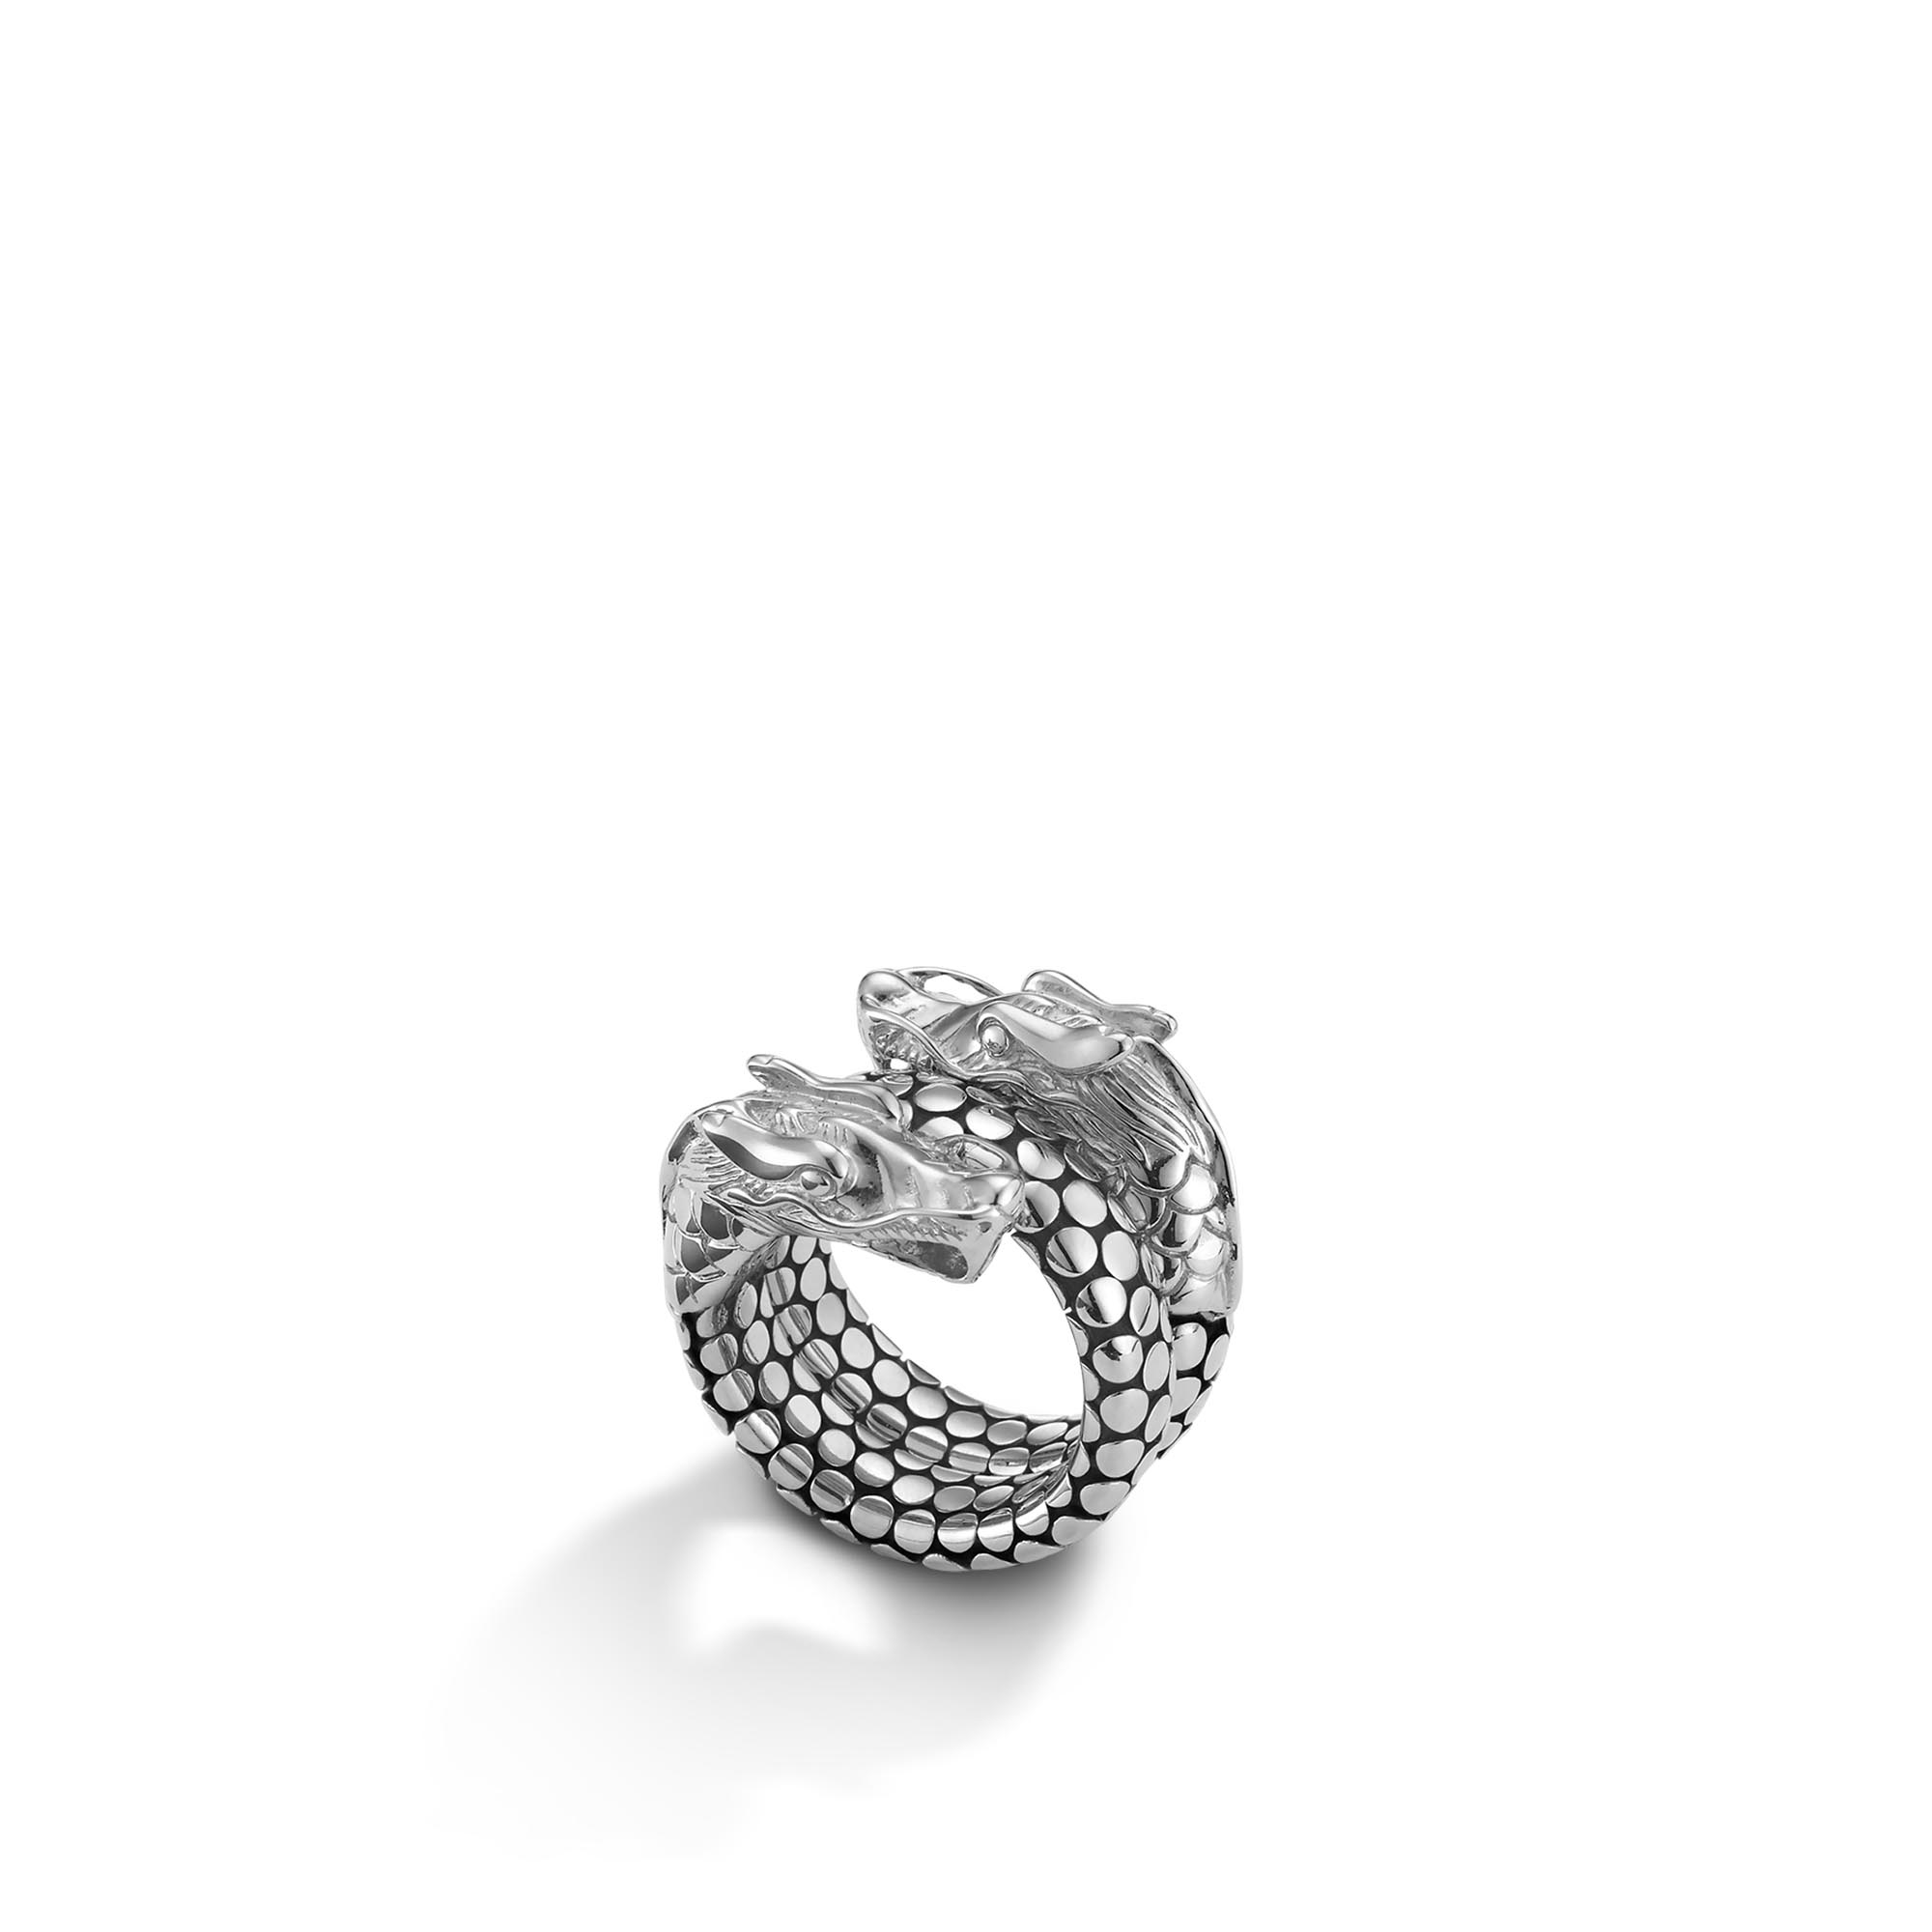 John Hardy       Silver Rings without Stones RB65282X7